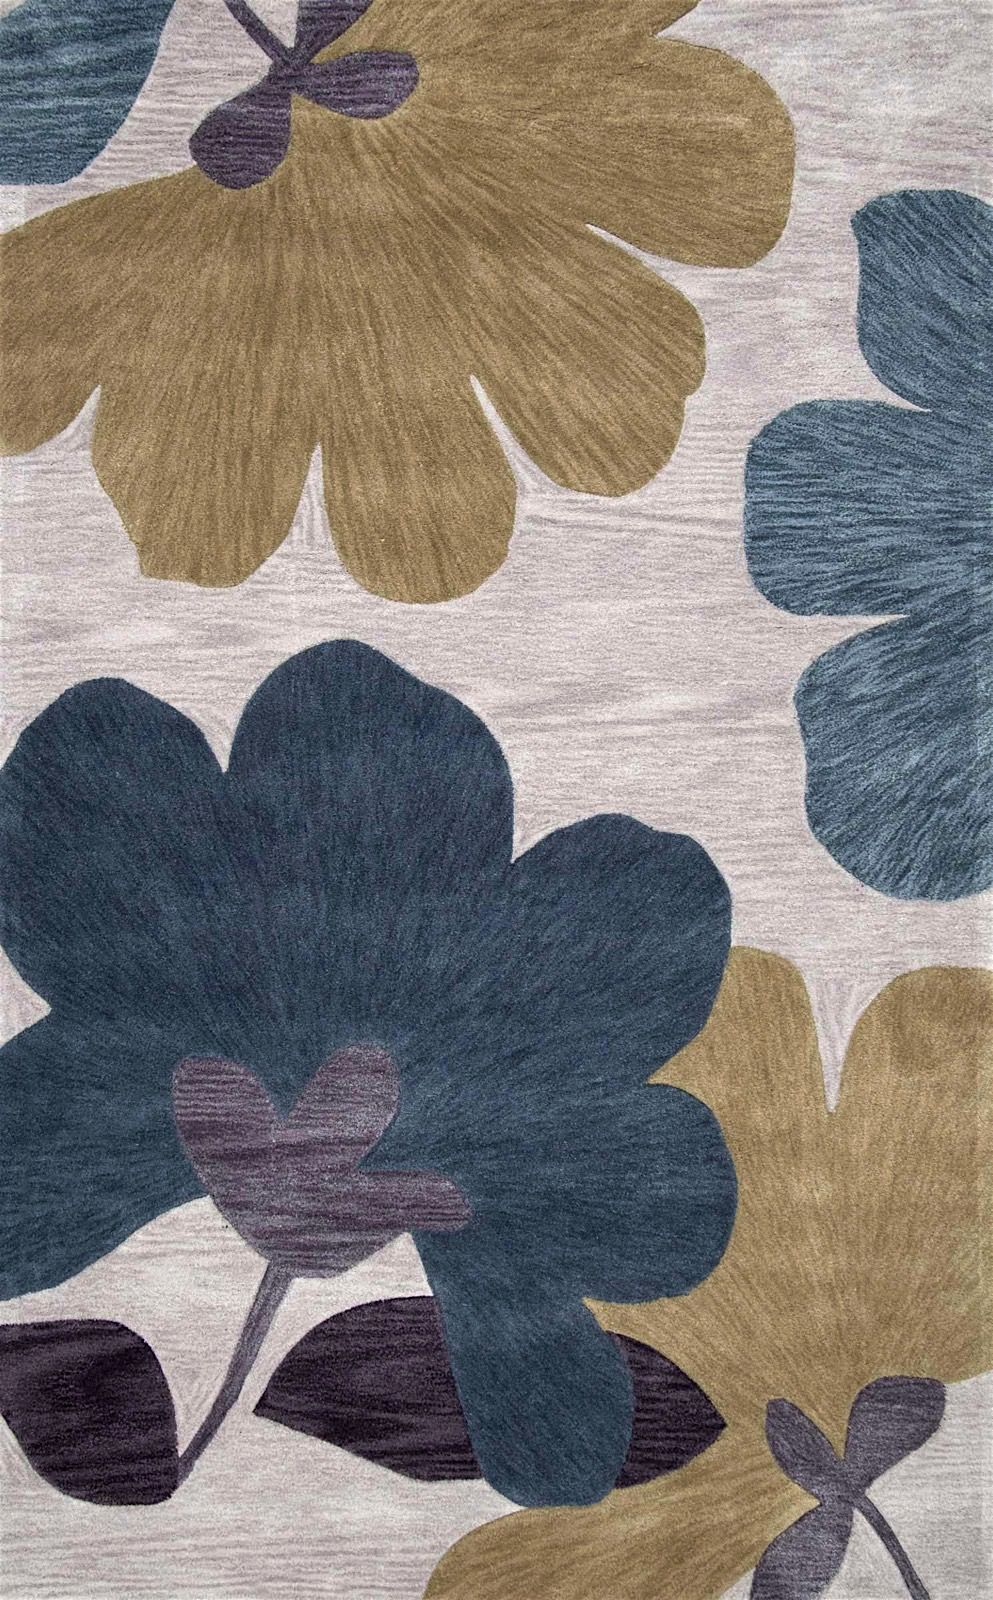 nuloom delinda floral country & floral area rug collection